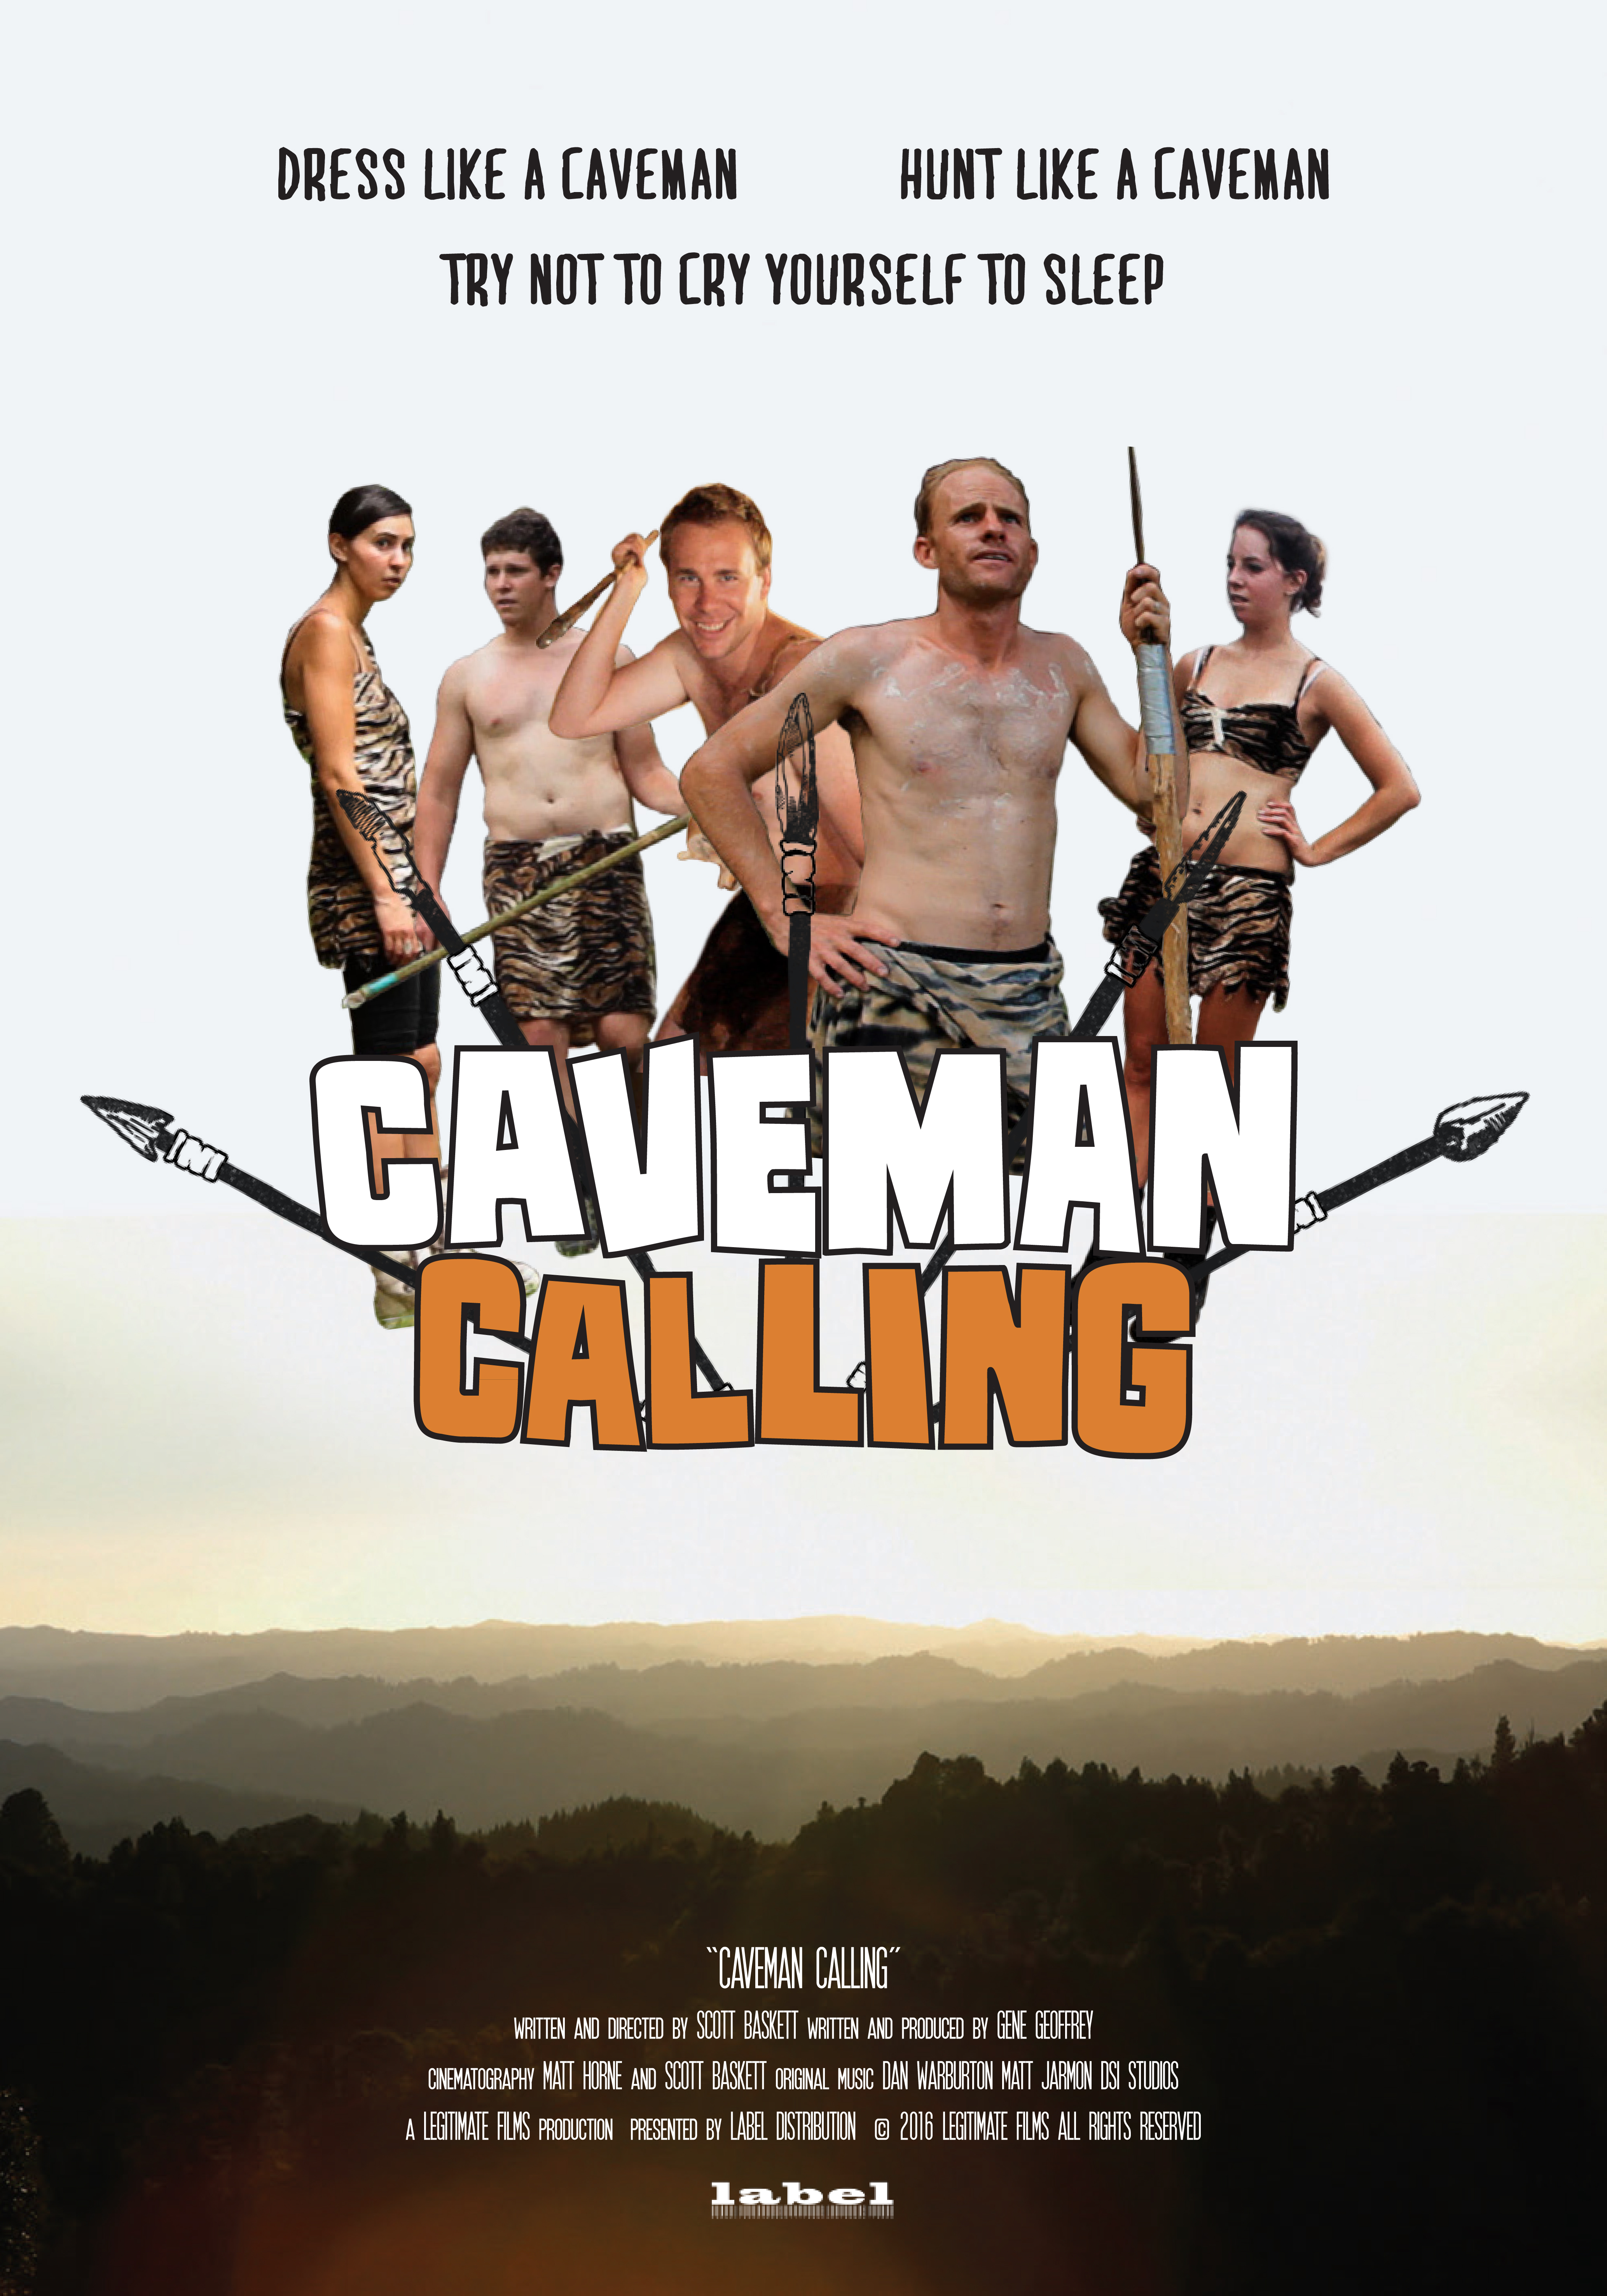 Caveman Calling Poster Movie 7x10 Proof6-2